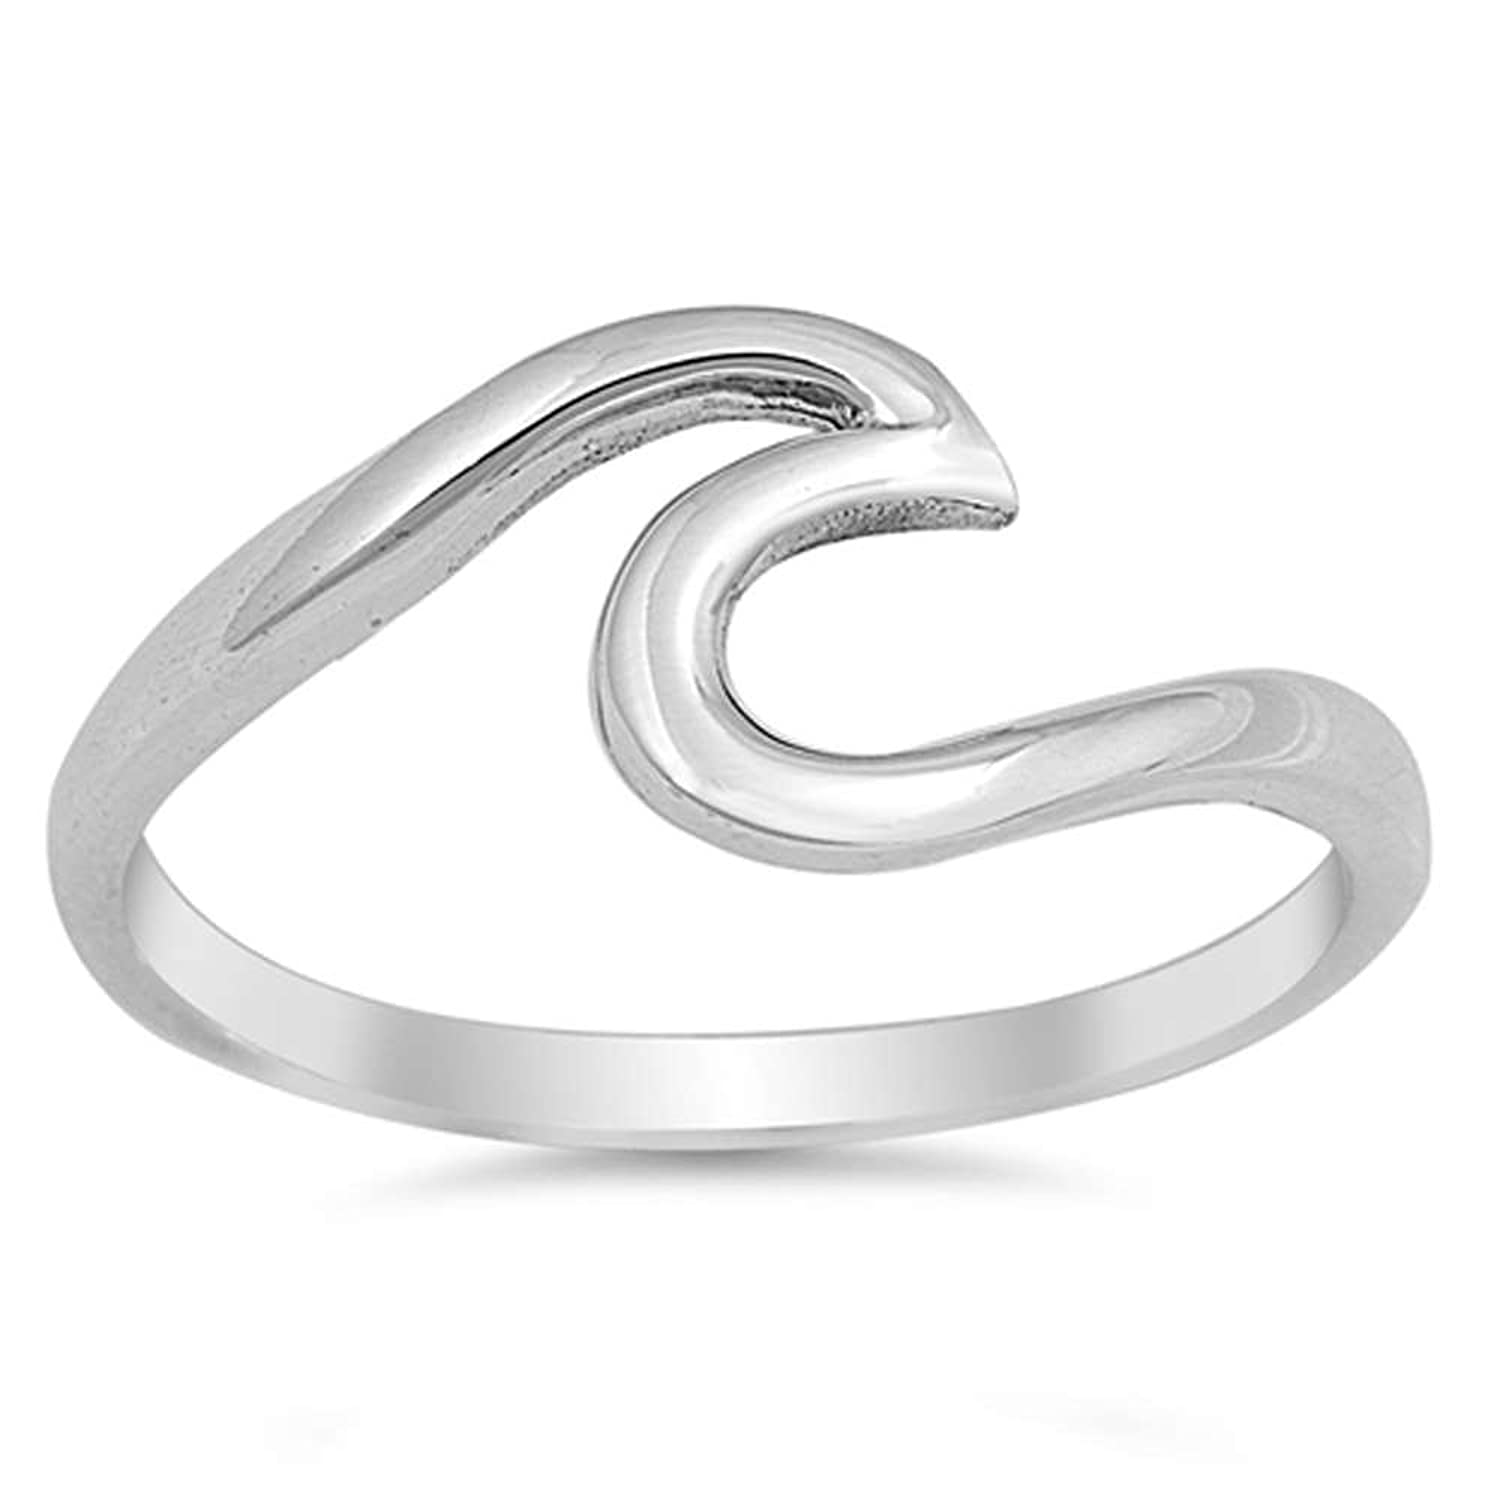 Amazon.com: Wave Design .925 Sterling Silver Ring Sizes 2-12 ...